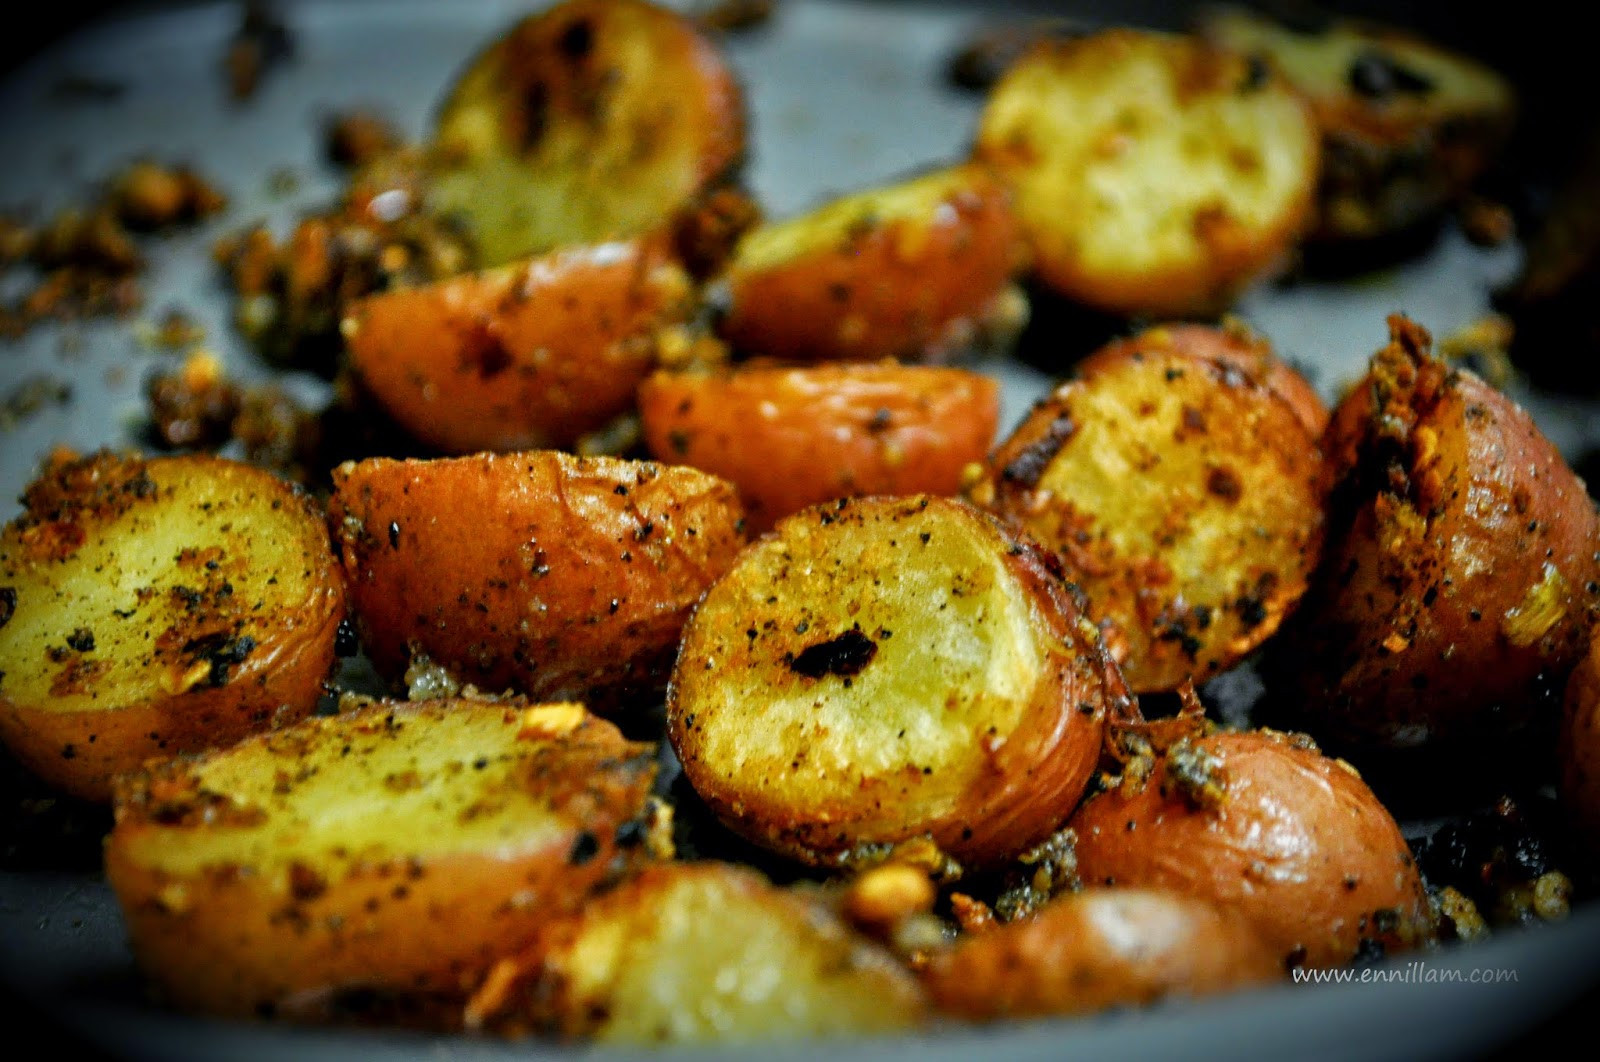 Oven Roasted Red Potatoes  Oven roasted red baby potatoes